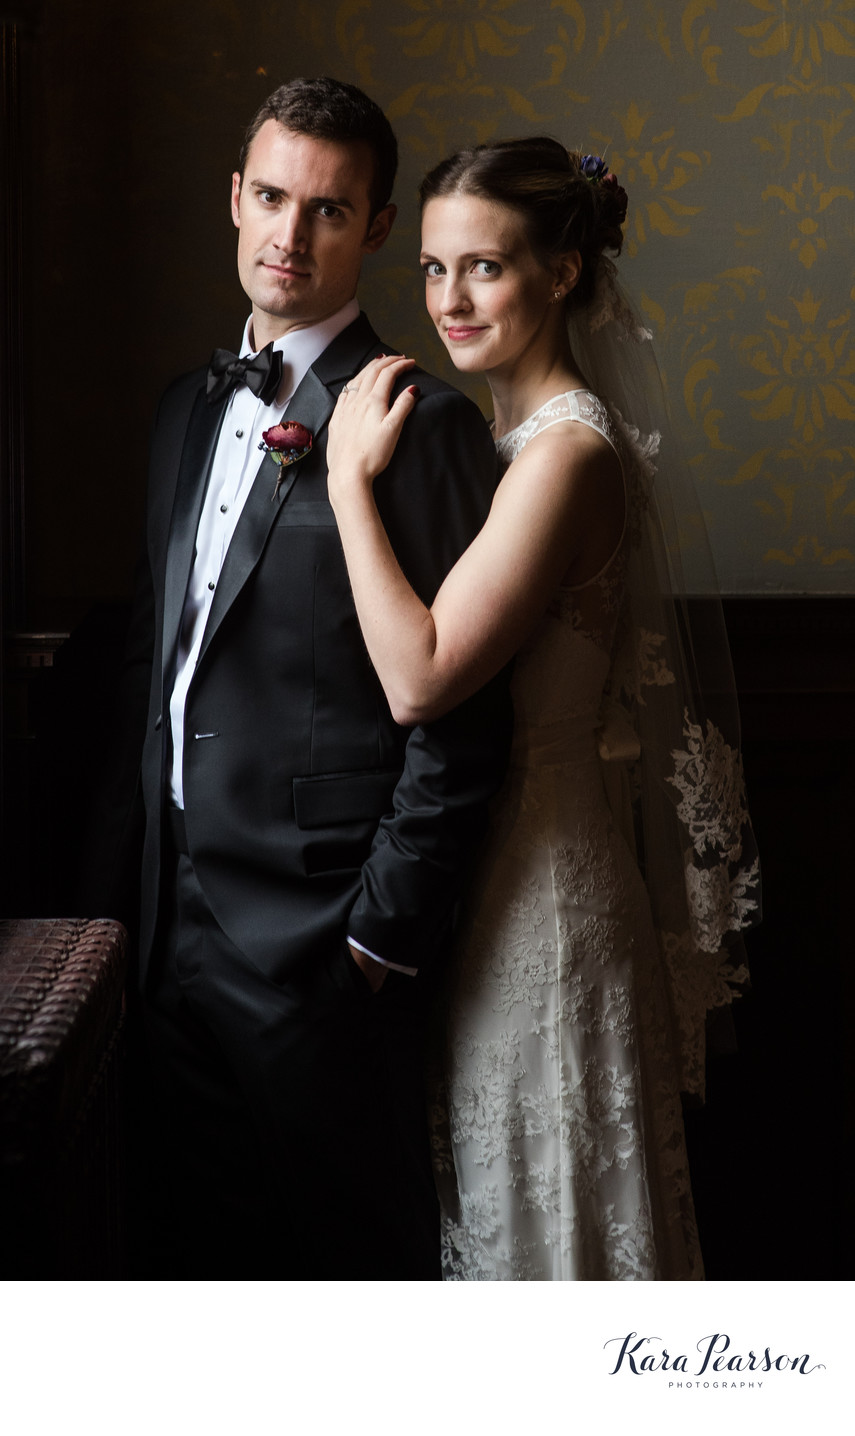 Wedding Portrait At Semple Mansion In Minneapolis